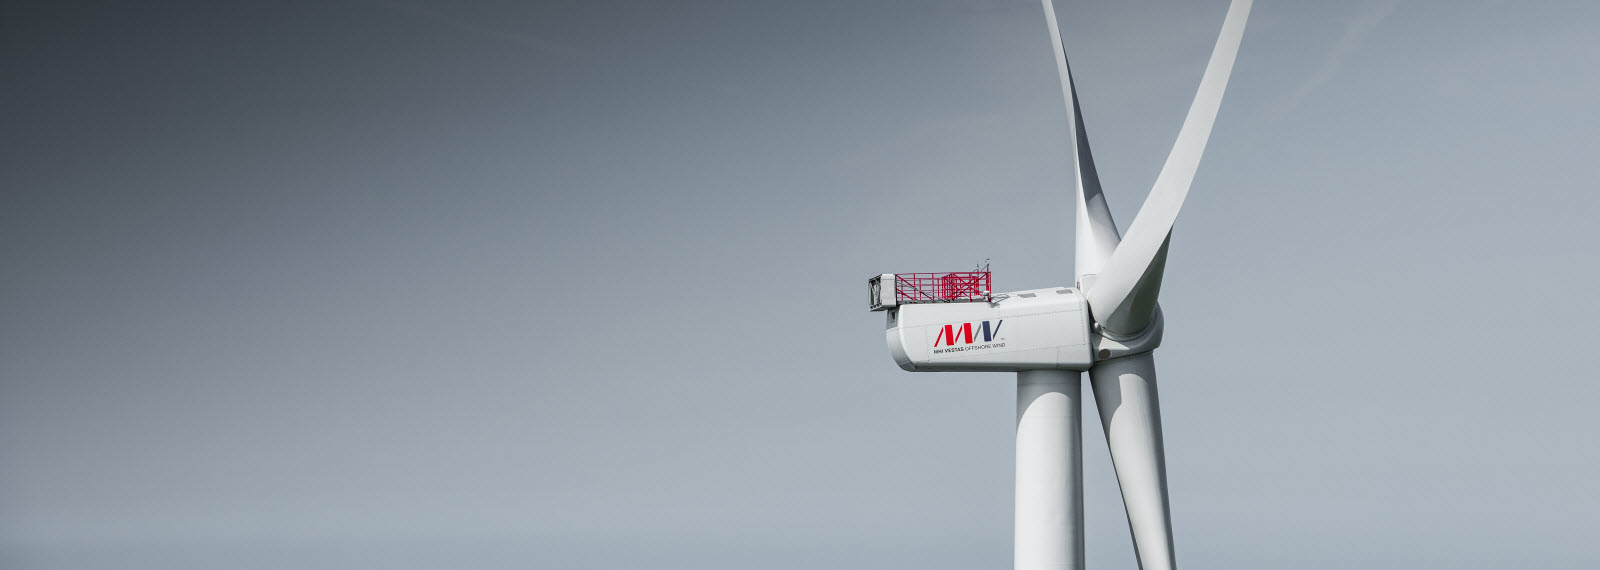 Vestas and Mitsubishi Heavy Industries strengthen partnership in sustainable energy